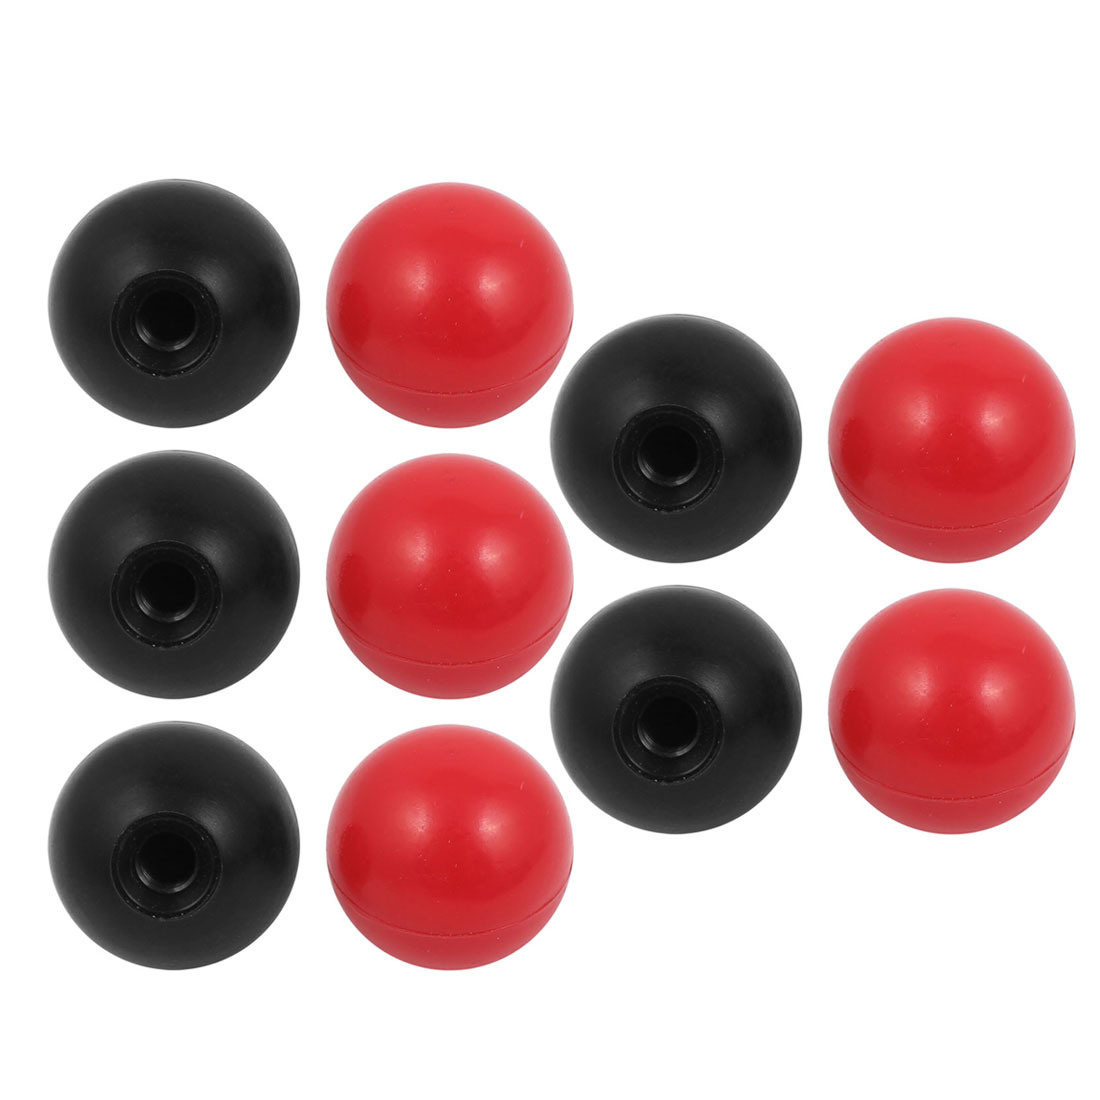 10 Pcs M10 x 35mm Plastic Ball Machine Tool Accessories Console Handle Black Red